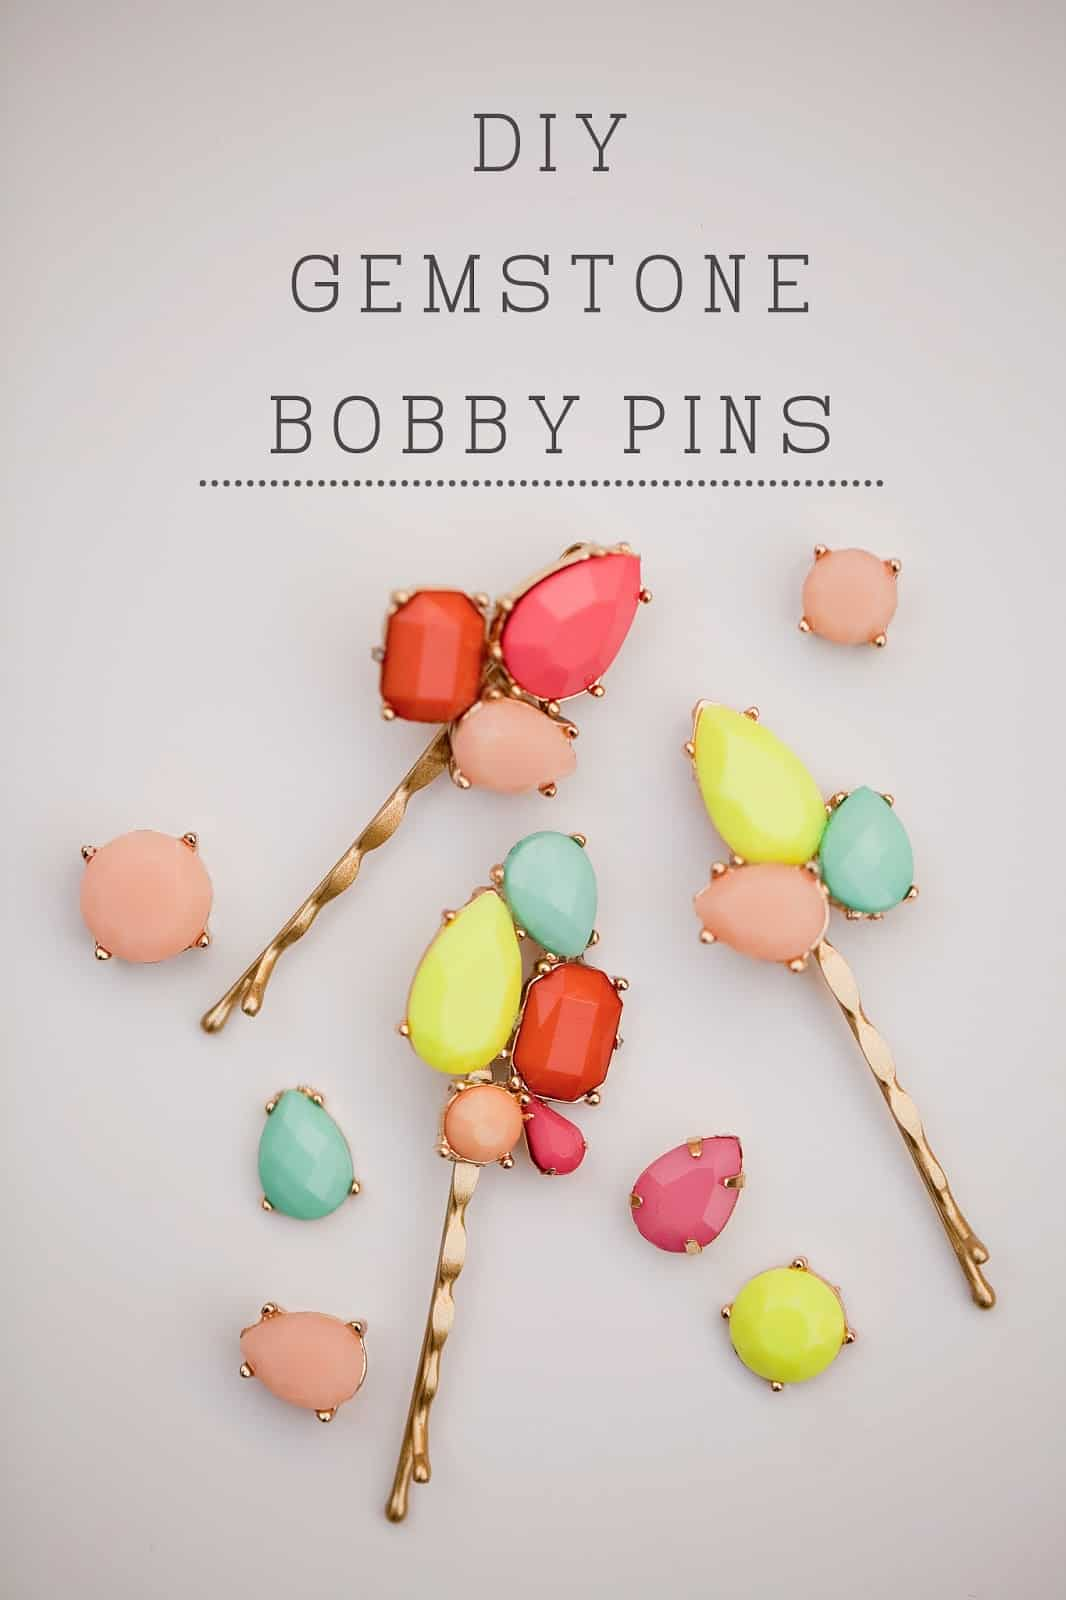 Diy Bobby Pins For Adorable Hair